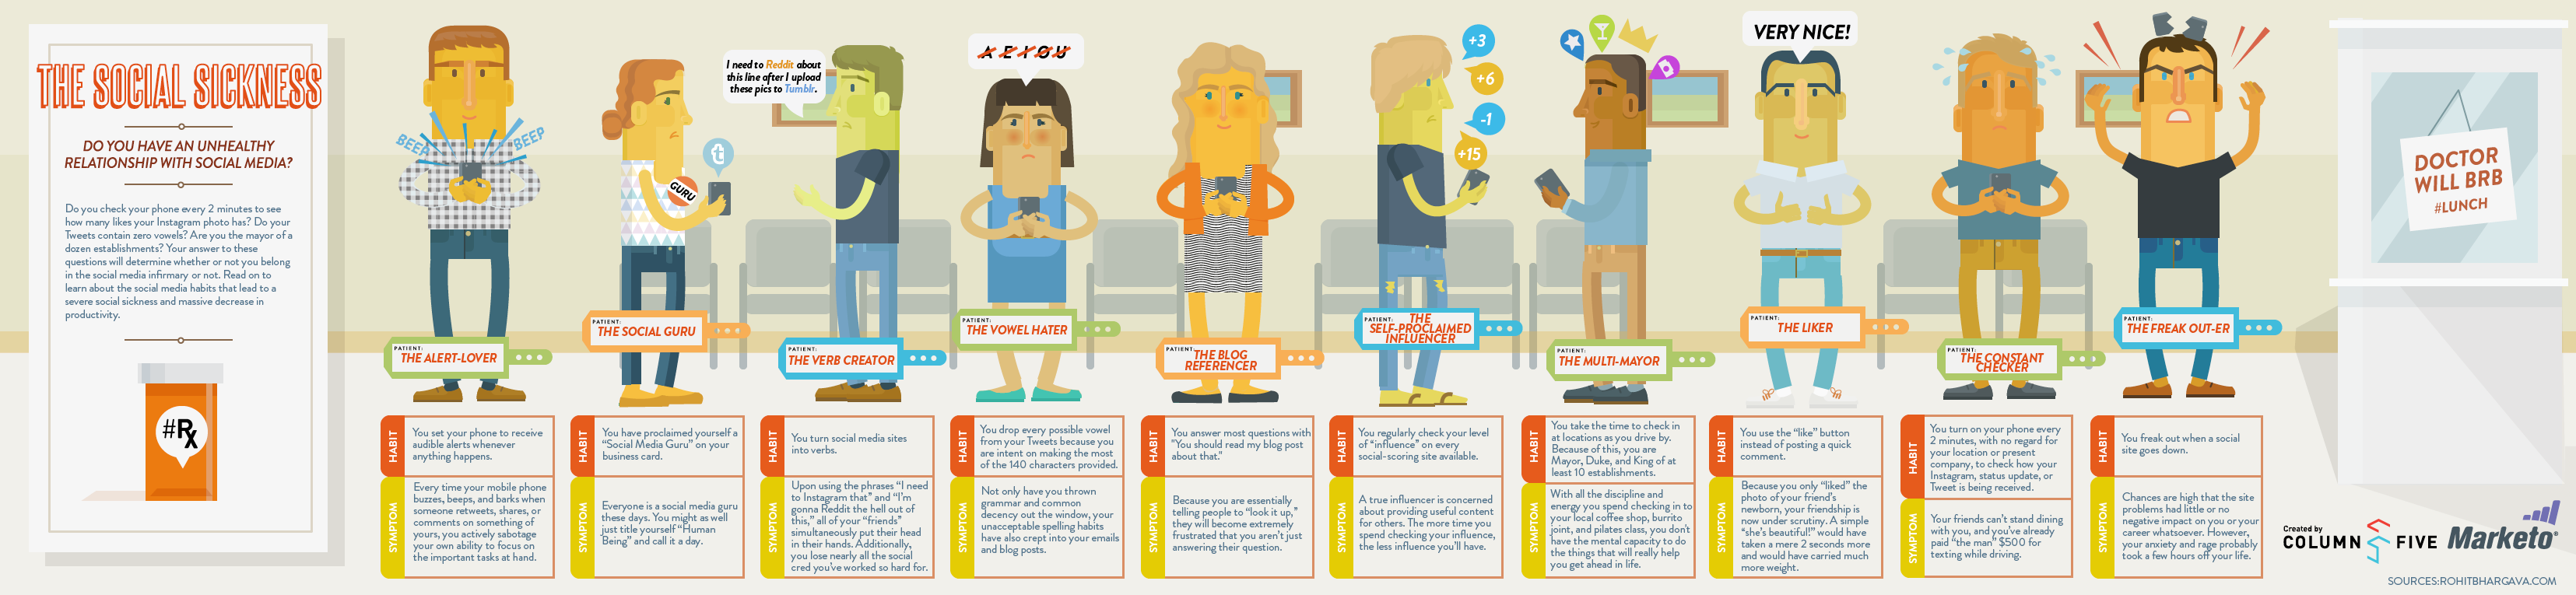 Social Media Addiction & Personality Types [Infographic]